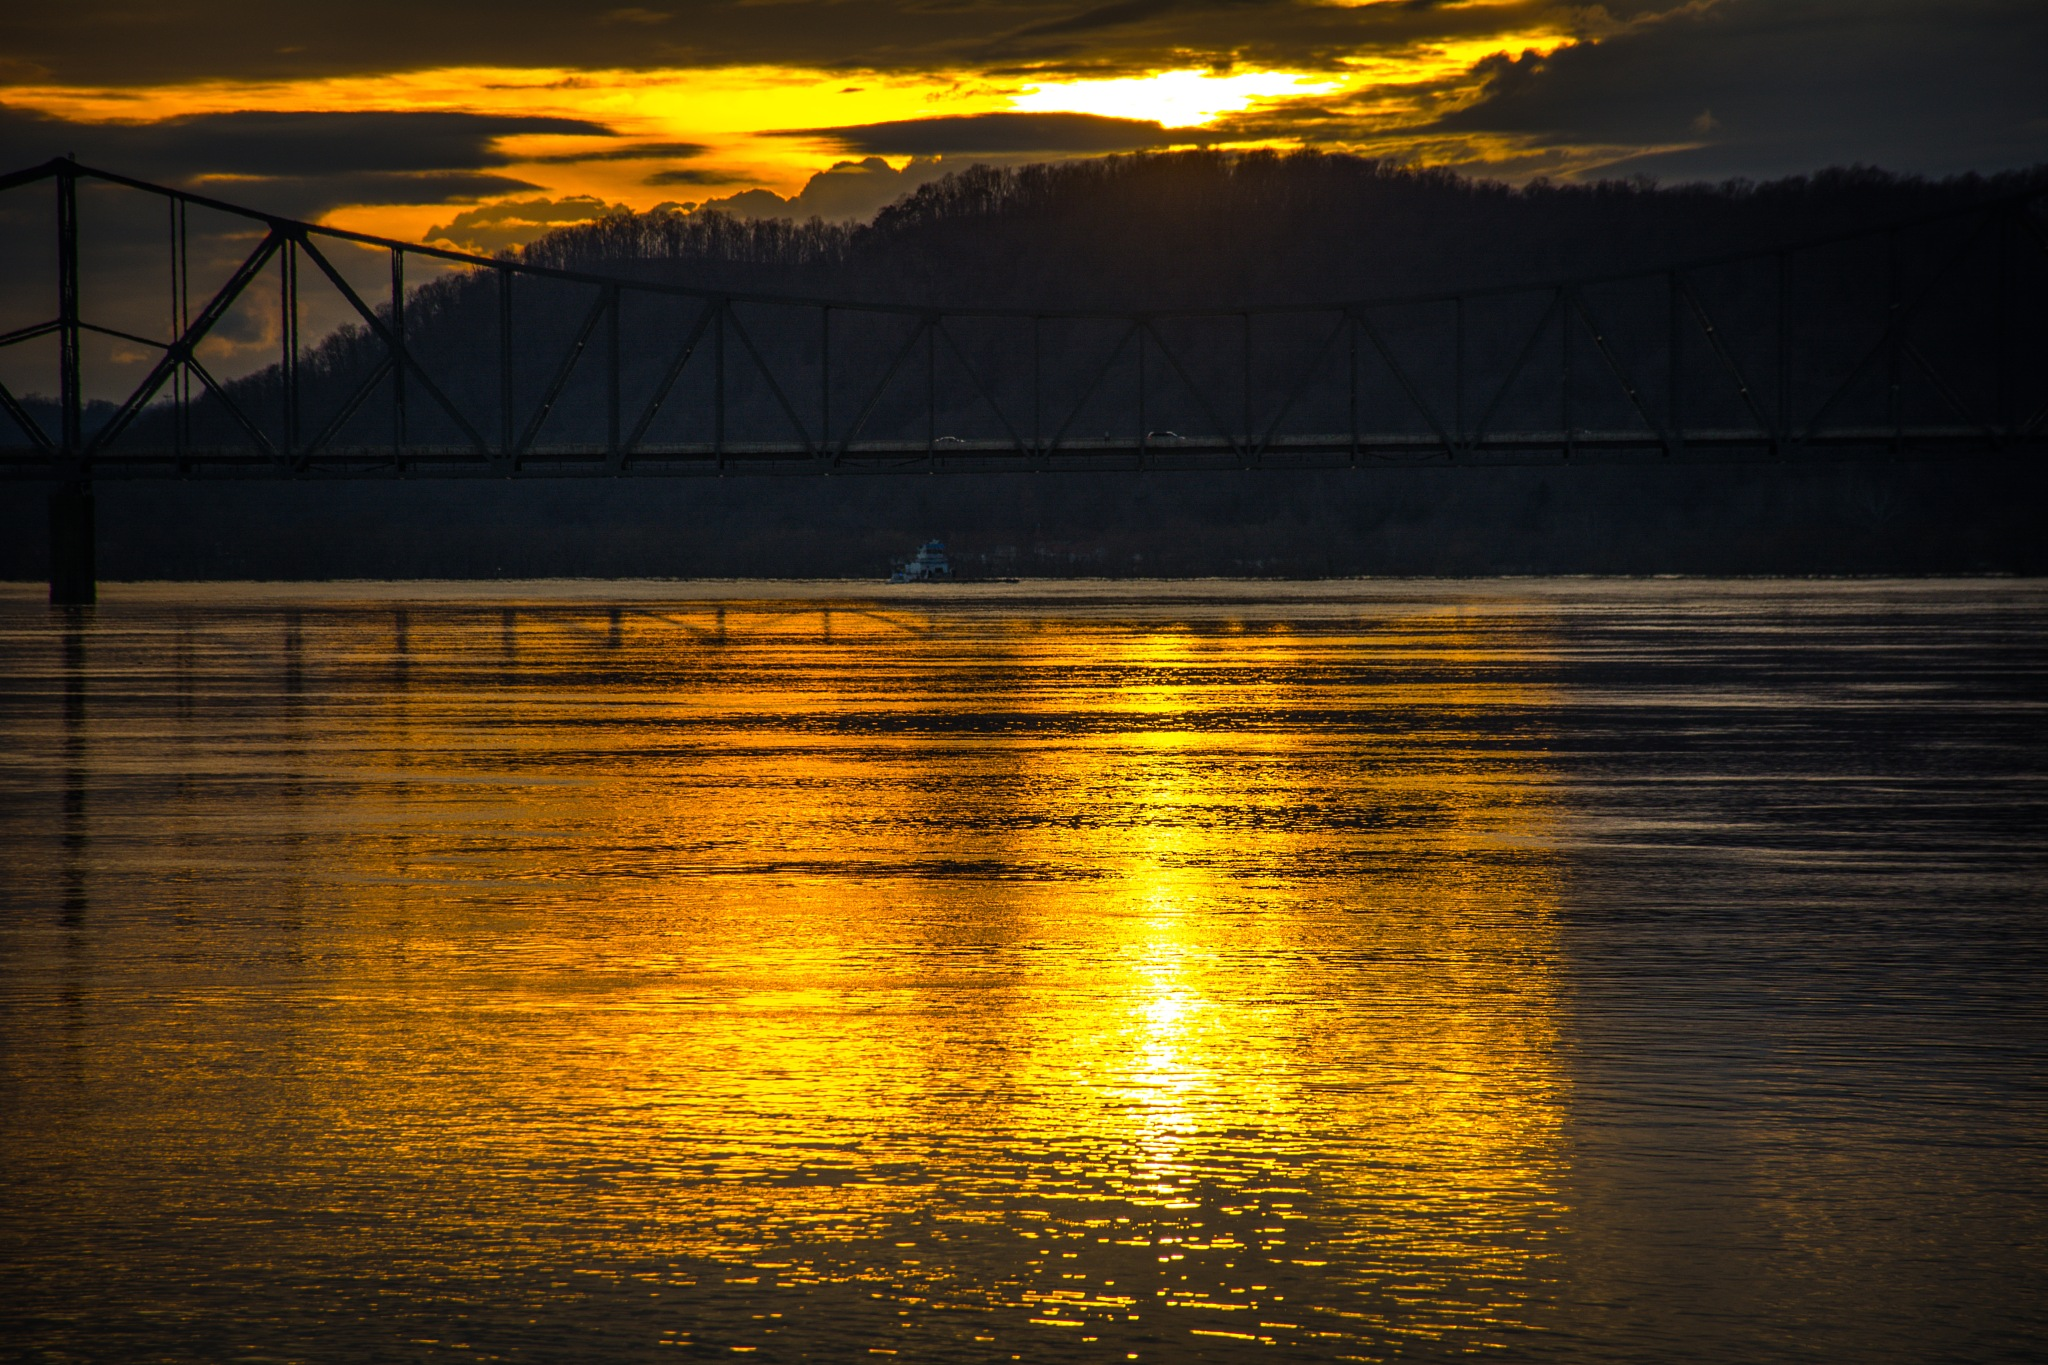 sunset over the Ohio River 2 by Zach Henderson